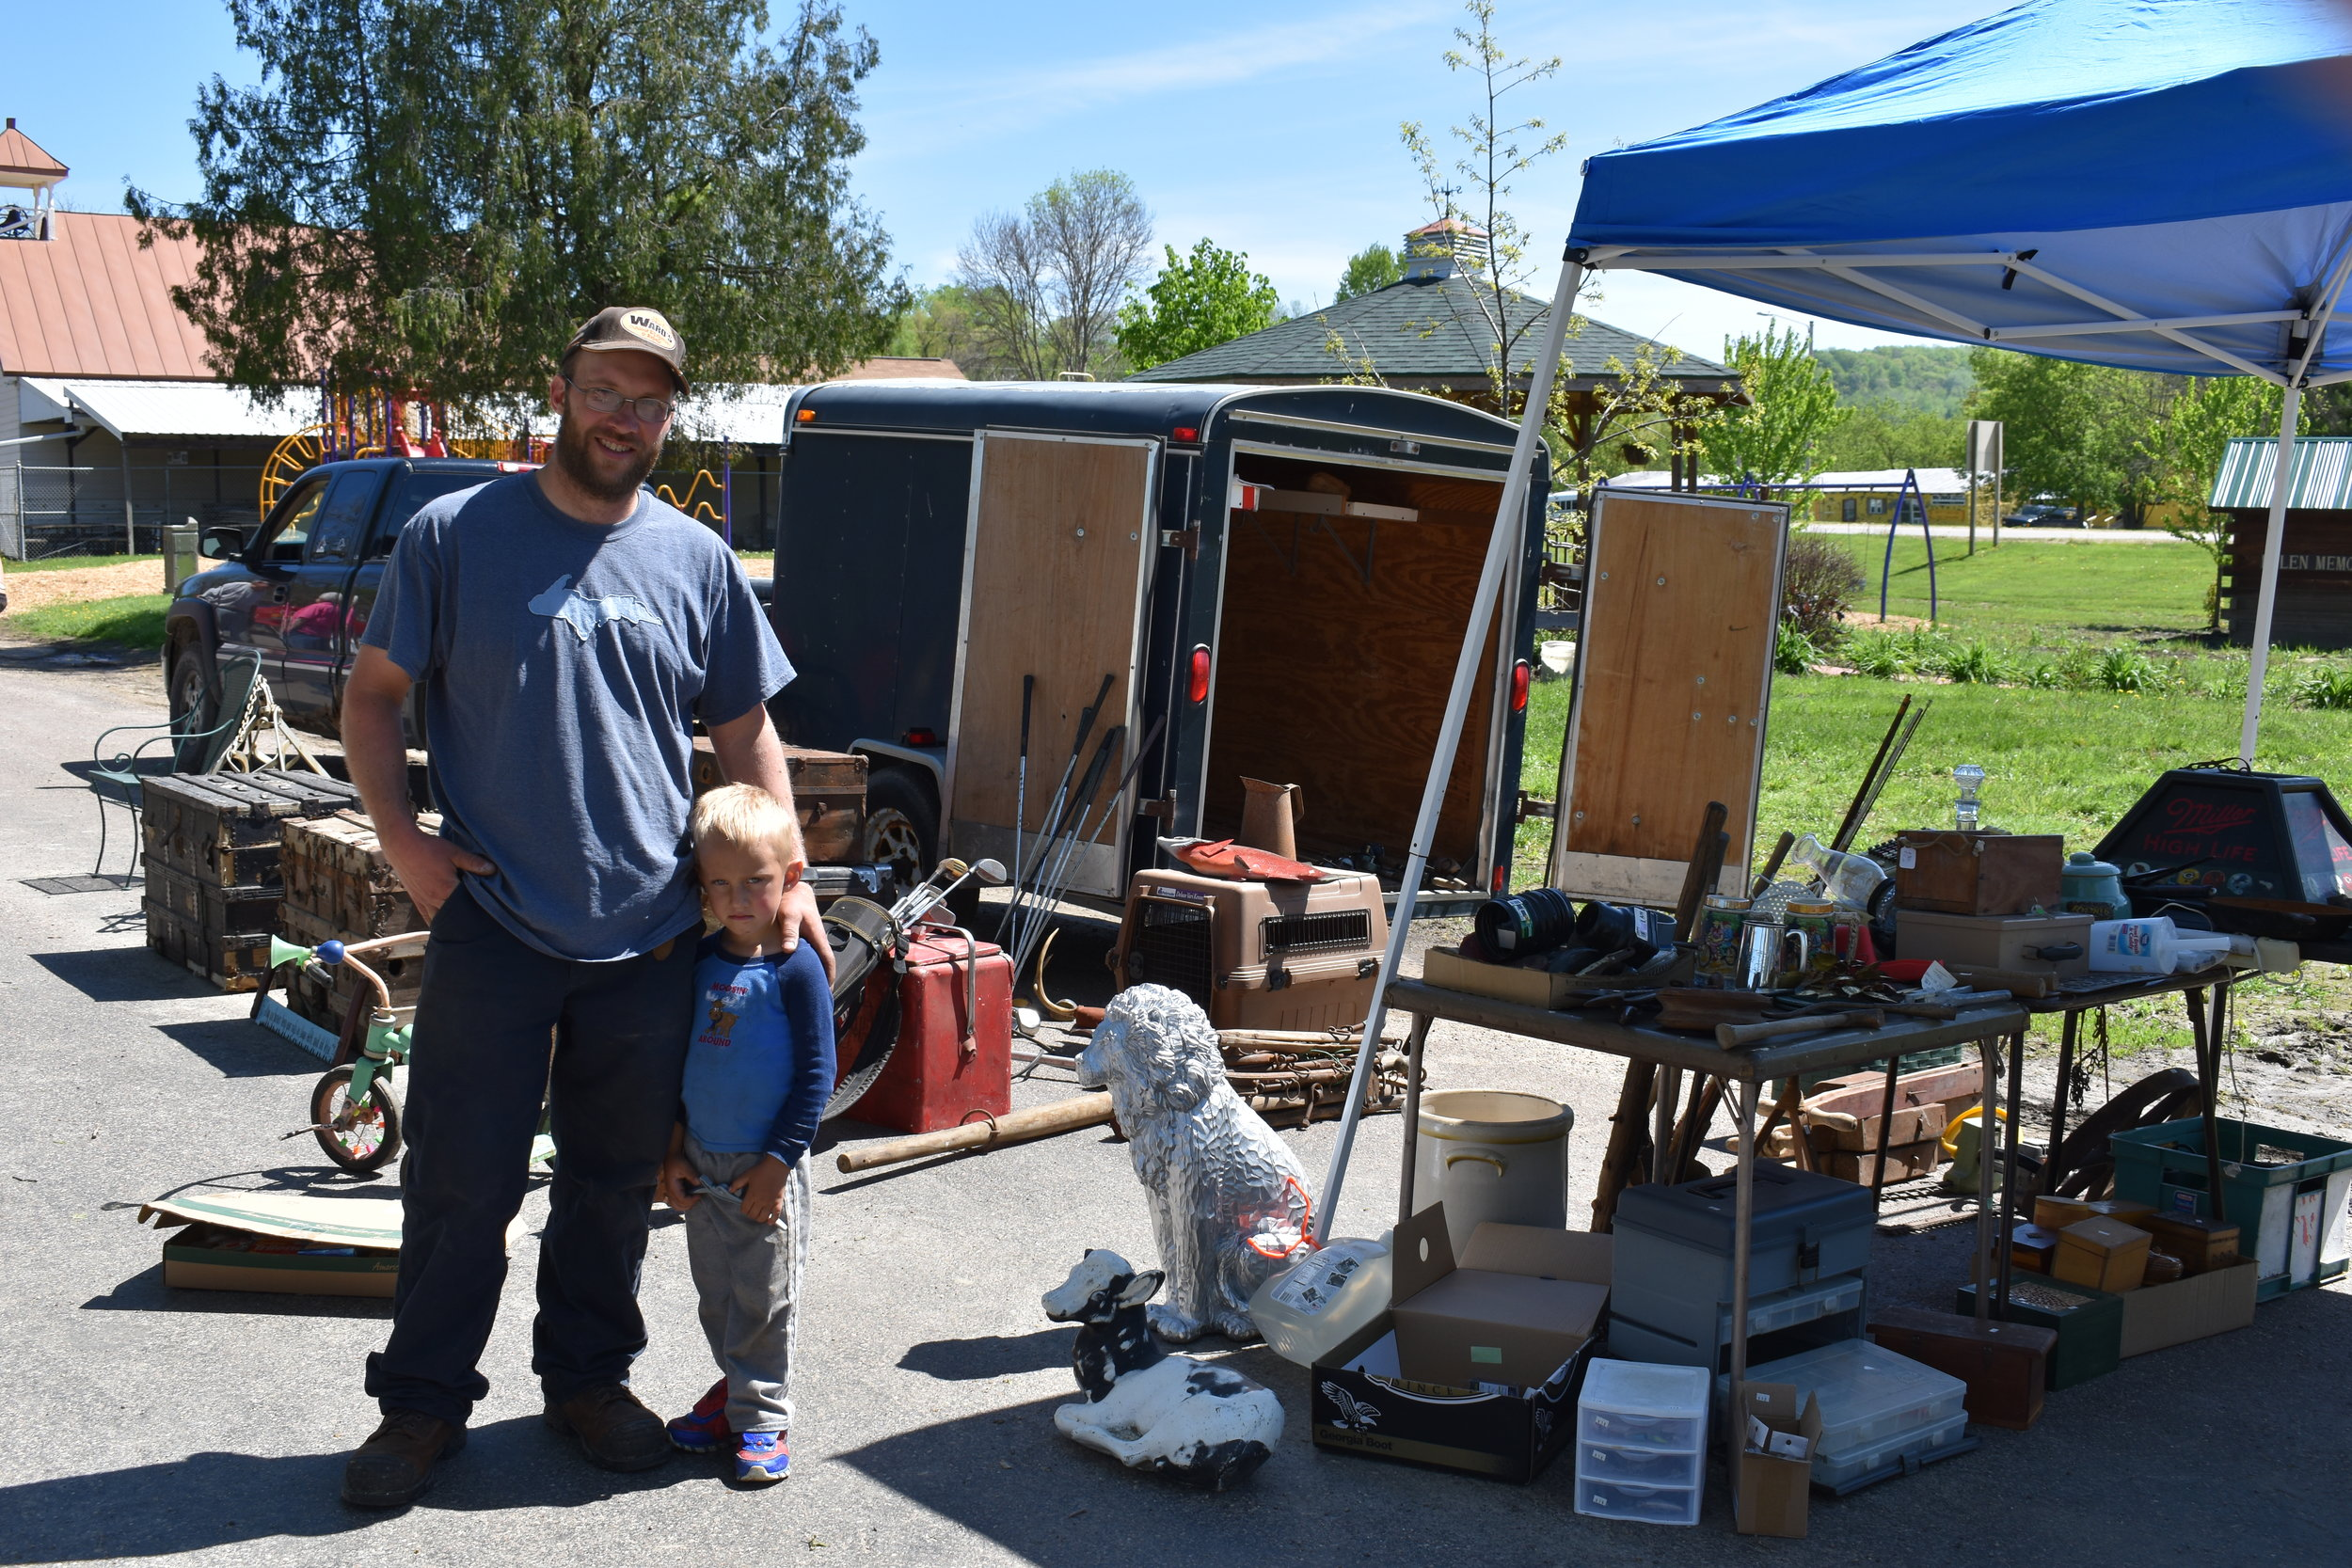 Chad Dompier and son Dale of Ontario, WI., selling vintage goods and fishing gear.